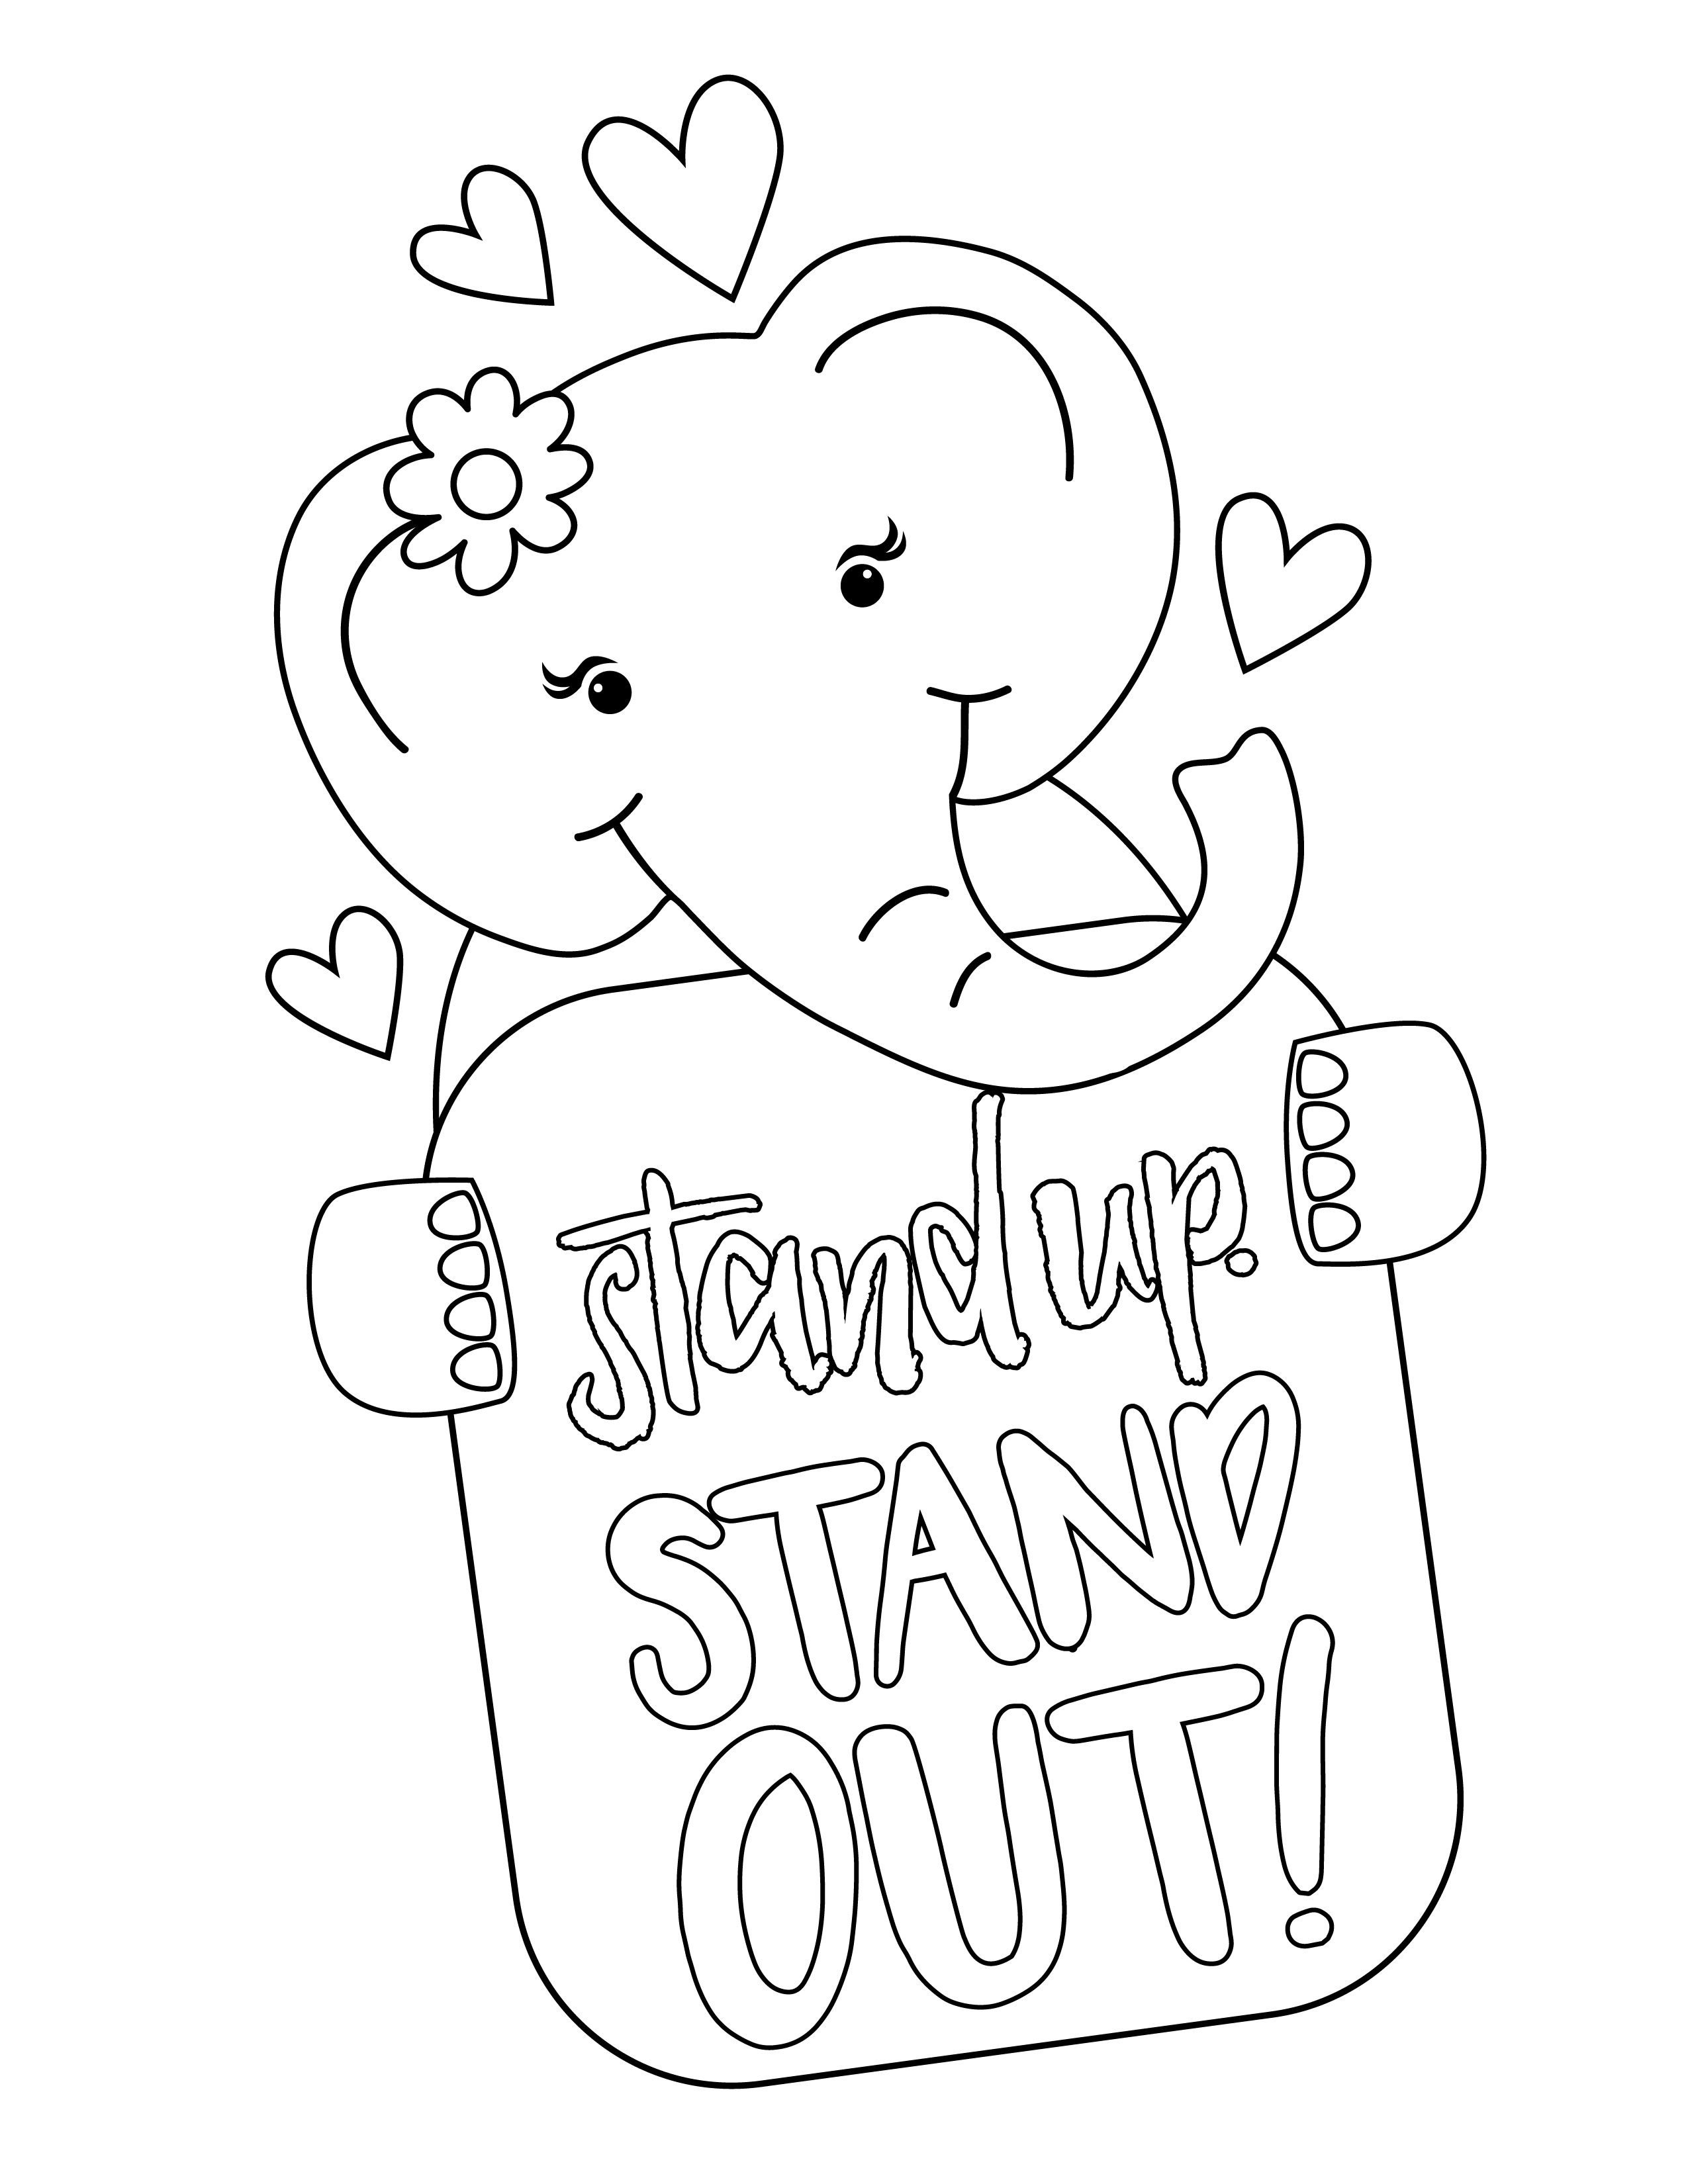 Girl Scout Cookie Mascot Coloring Page